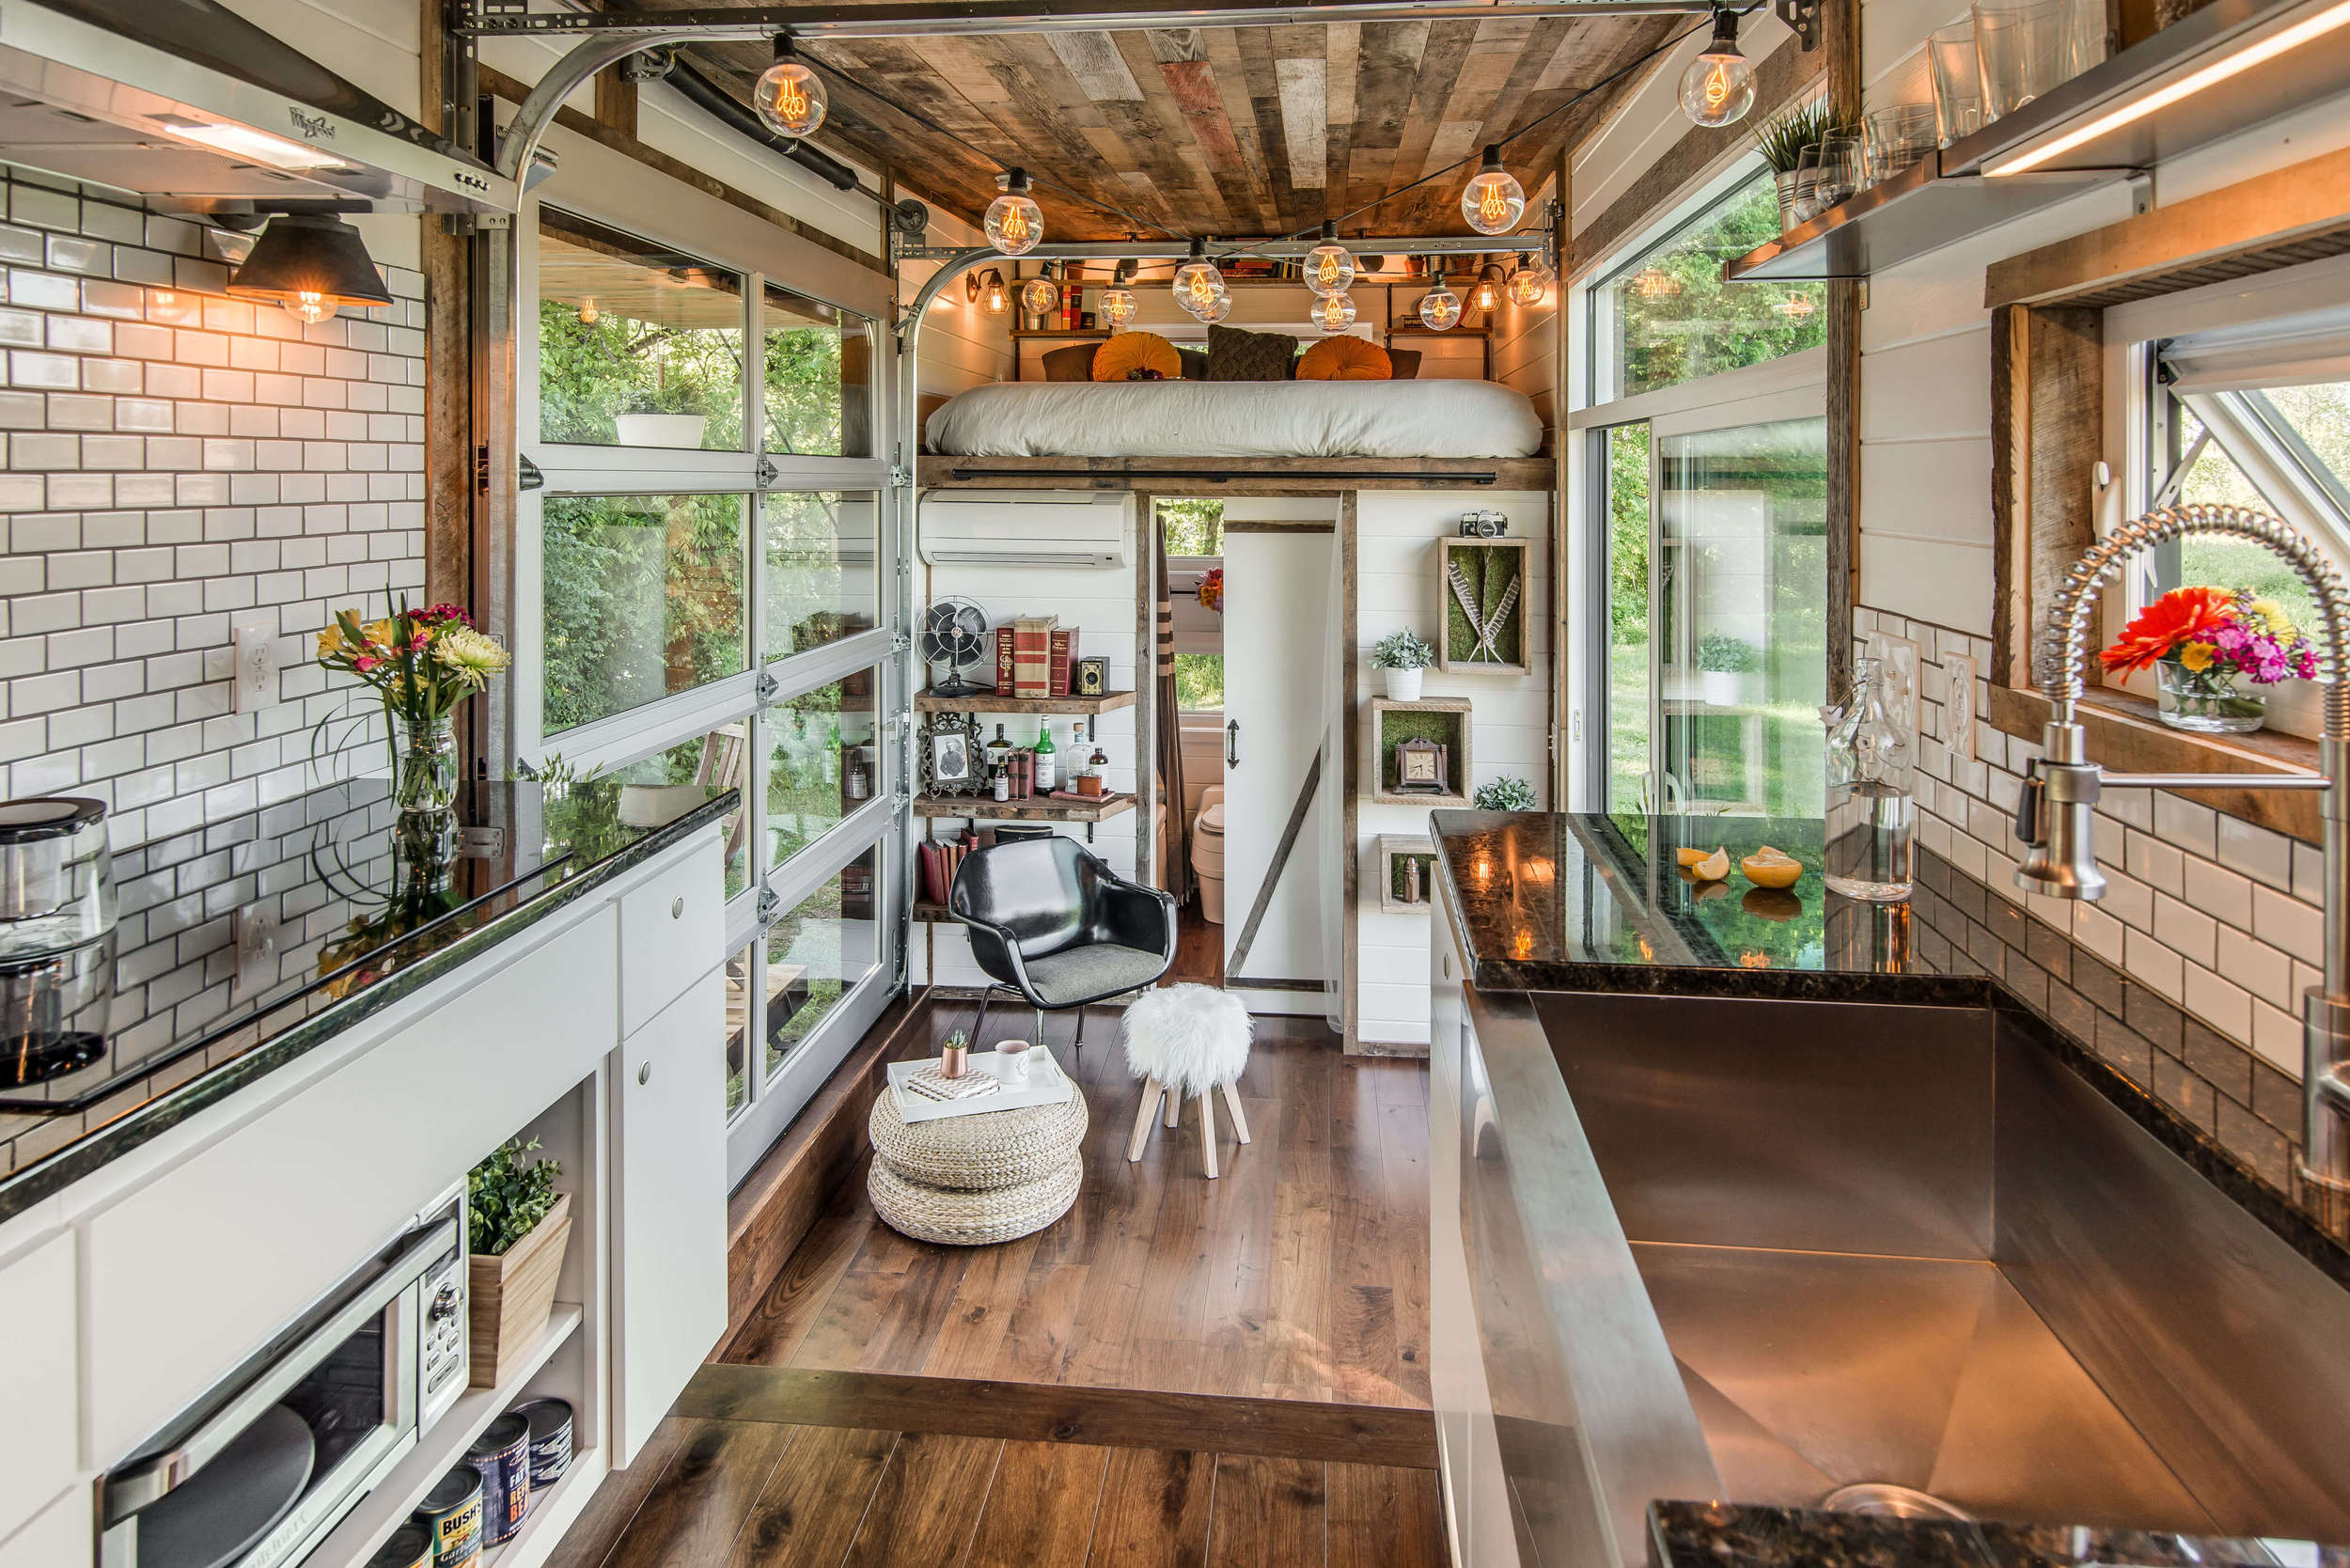 6 Reasons Why You Should Consider a Tiny Home